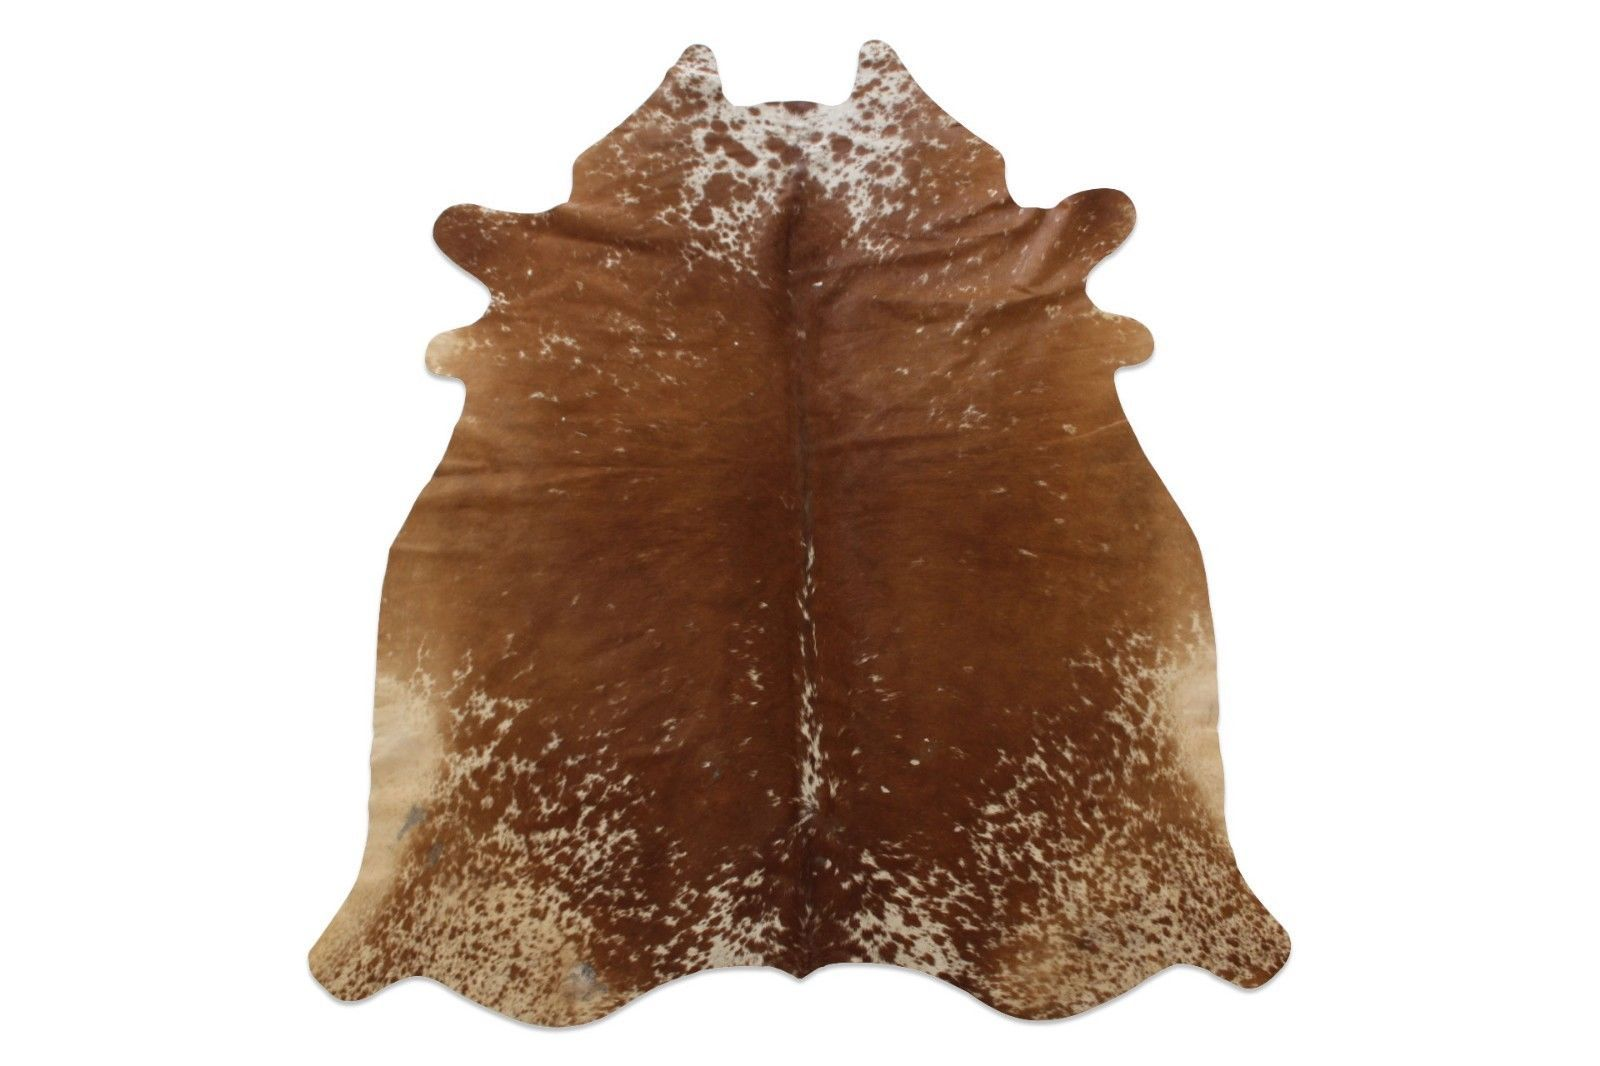 Natural Cowhide Area Rug 30 Sq Ft Brown White Salt And Pepper Pure Cowhide Rug Cow Skin Rug White Cowhide Rug Cow Hide Rug